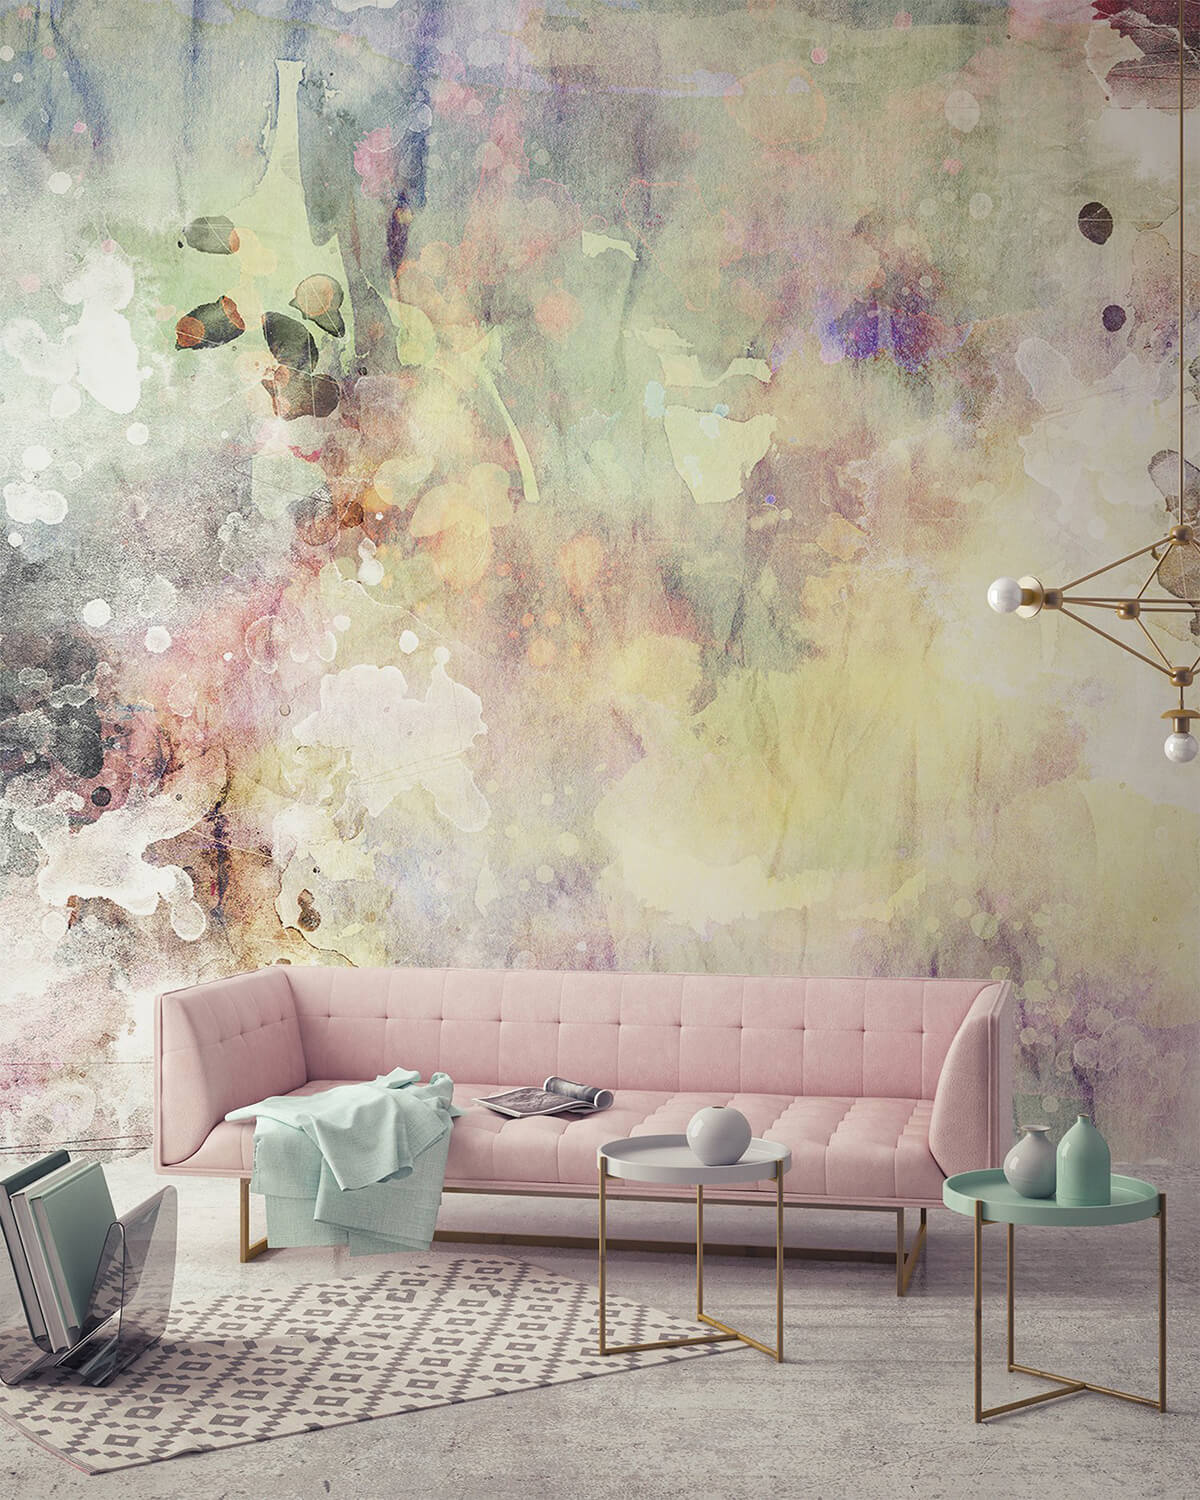 14 Best Interesting Wall Decor Ideas and Designs for 2019